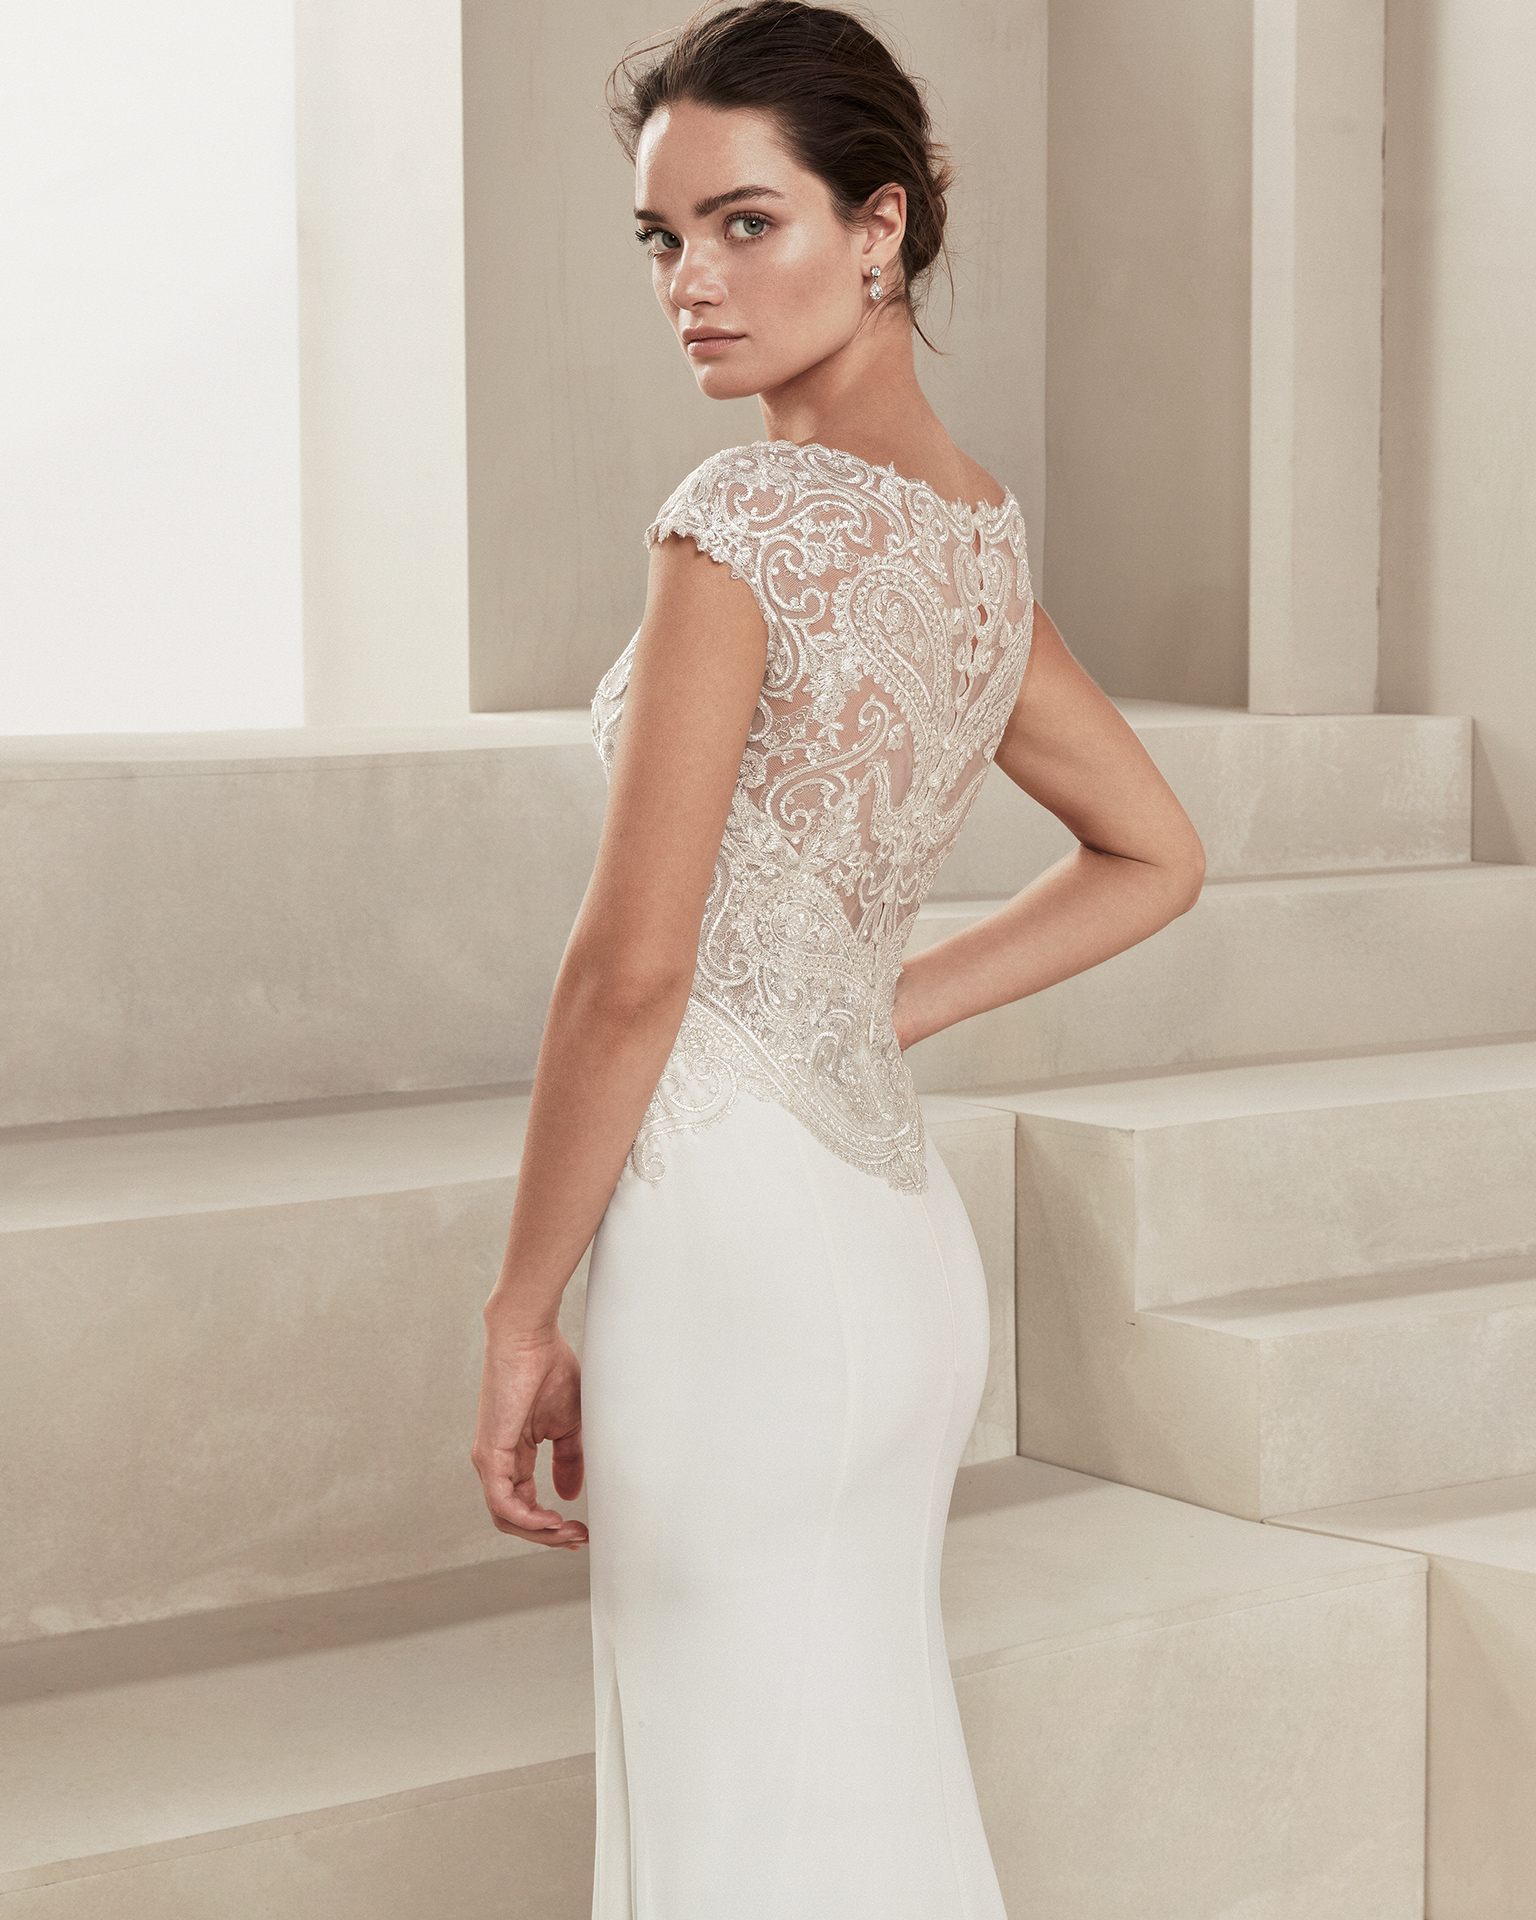 Sheath-style wedding dress in crepe Georgette and beaded lace. With V-neckline. Available in natural. 2019 ALMA_NOVIA Collection.